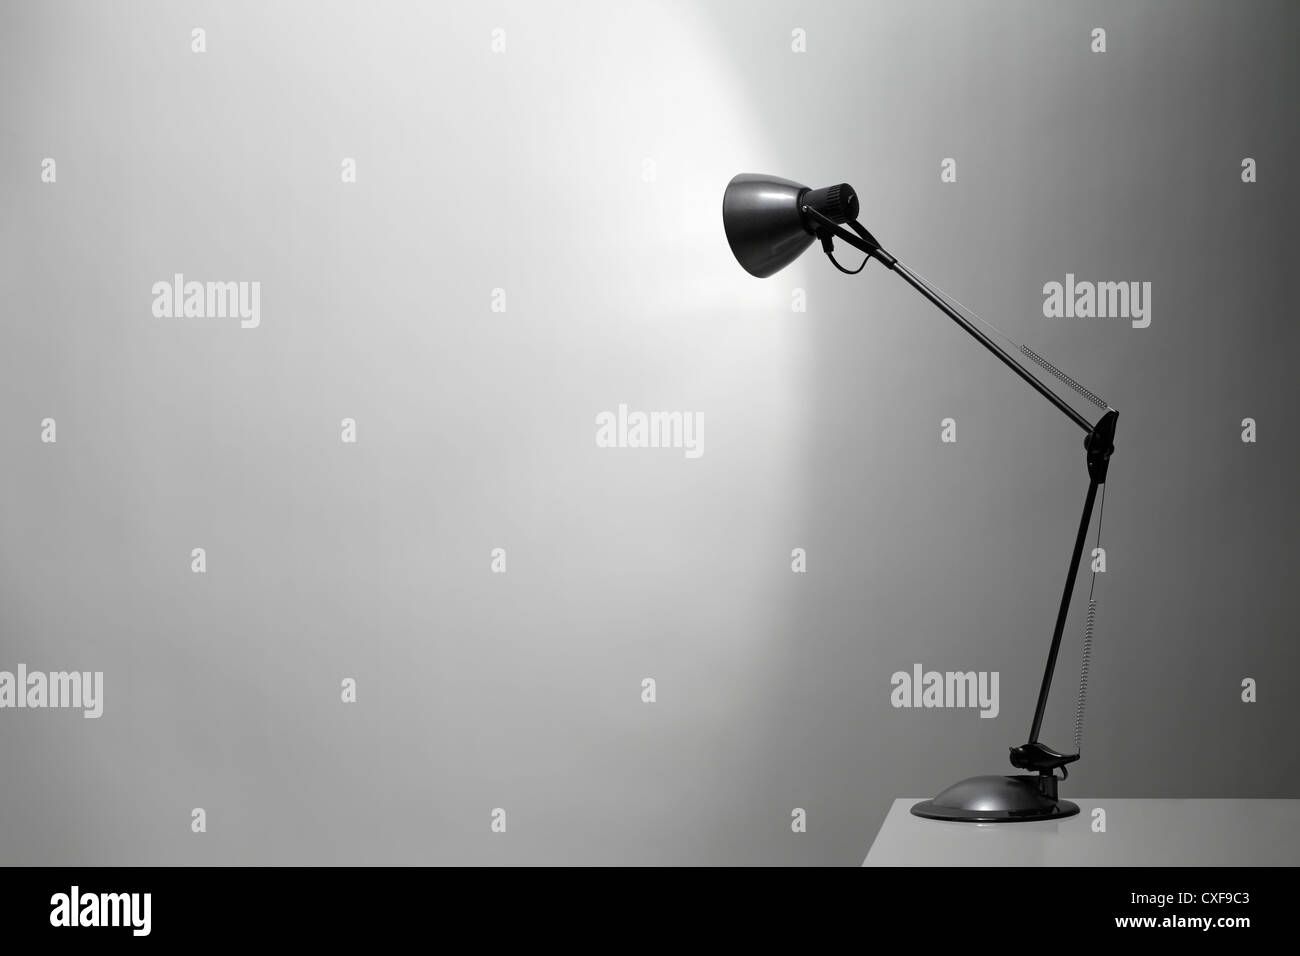 A Grey desk lamp pointed at a grey wall. - Stock Image